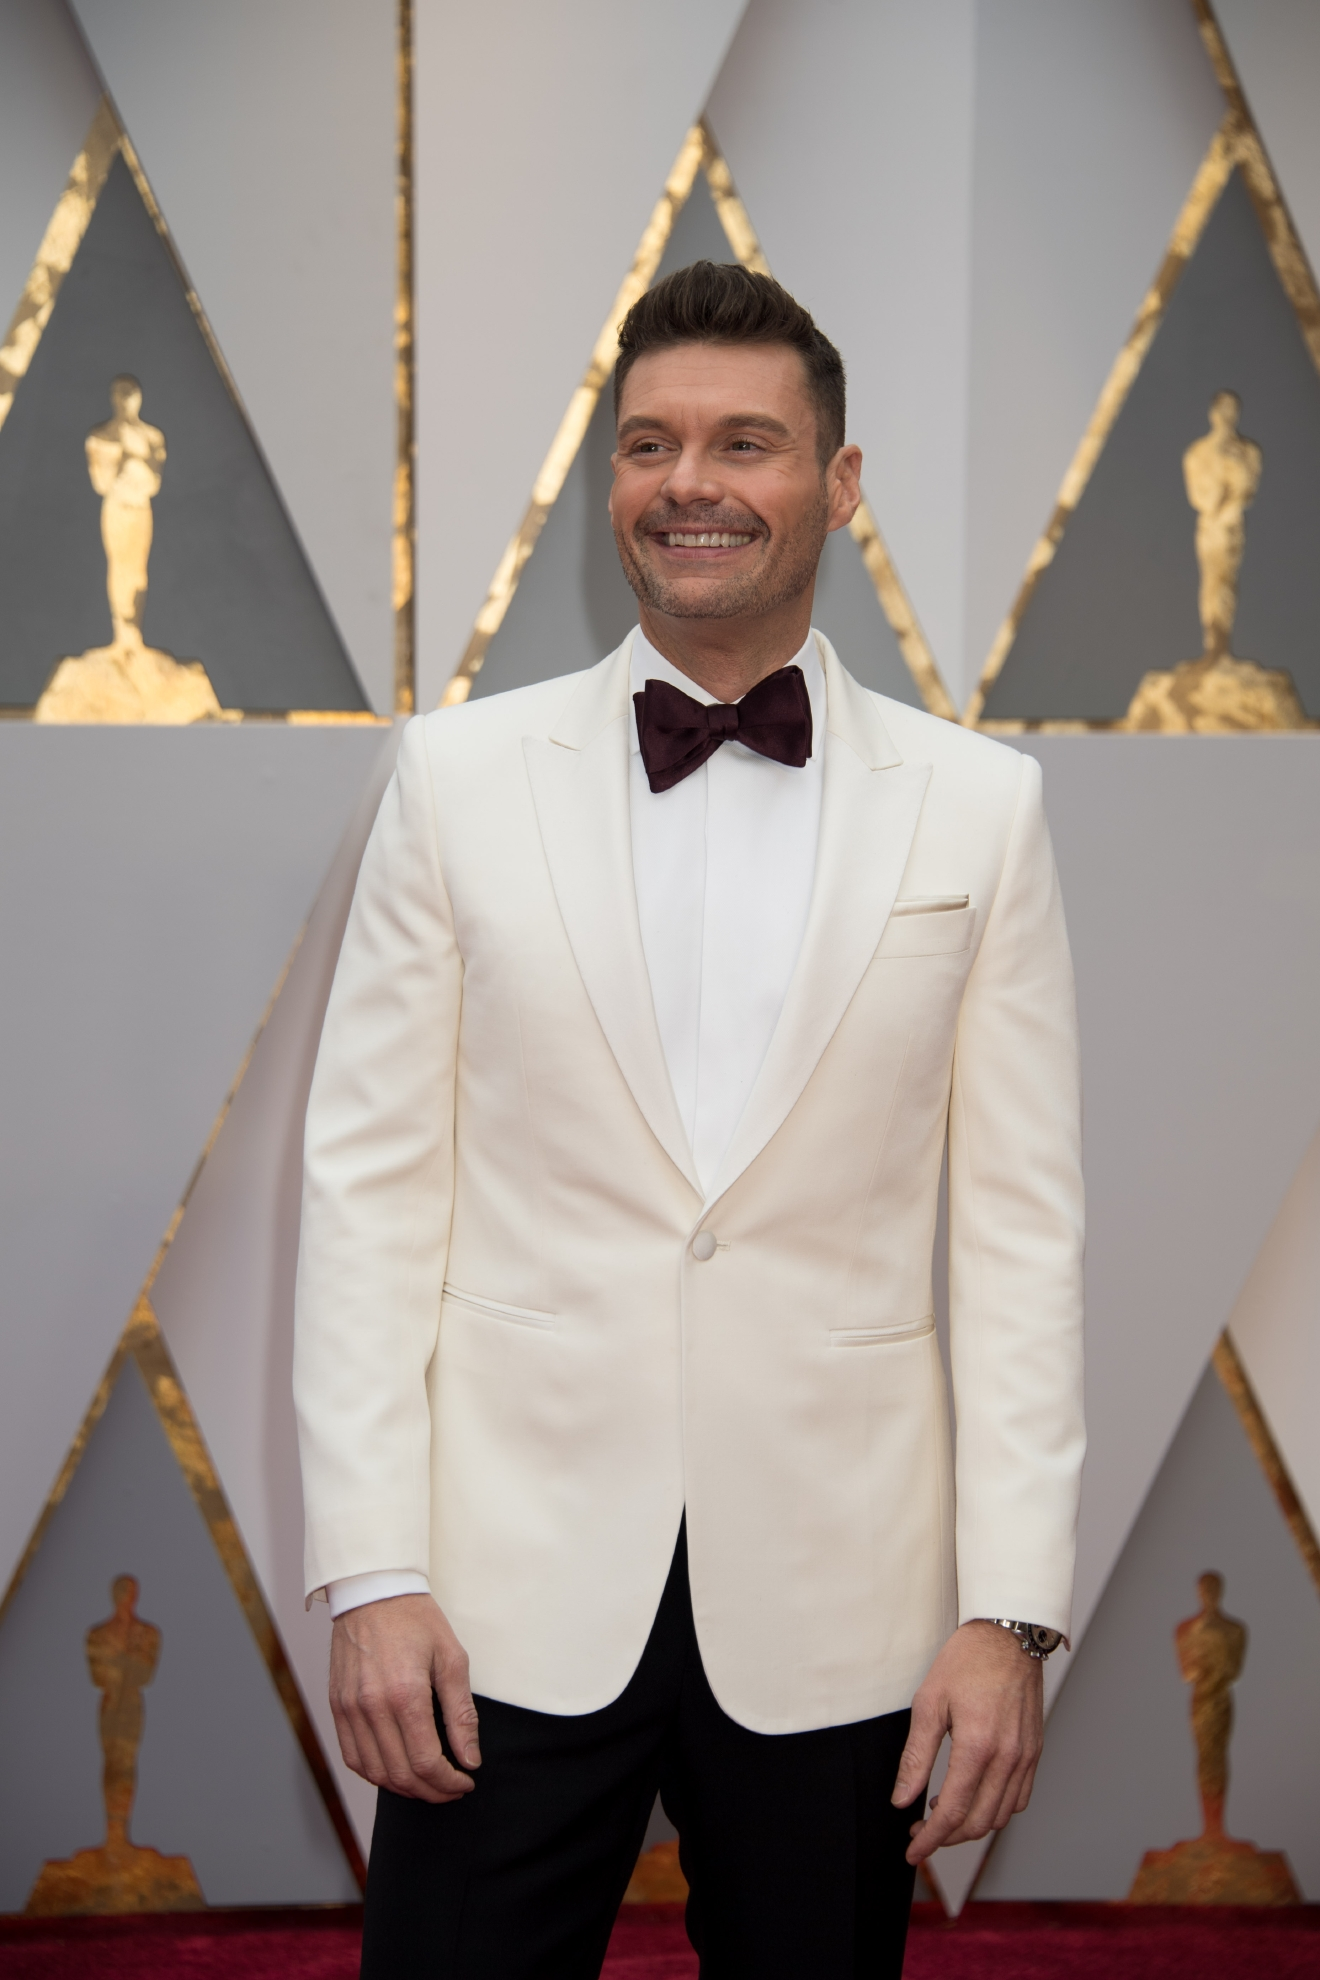 Ryan Seacrest, Oscar® nominee, arrives on the red carpet of The 89th Oscars® at the Dolby® Theatre in Hollywood, CA on Sunday, February 26, 2017. (Michael Yada / ©A.M.P.A.S.)